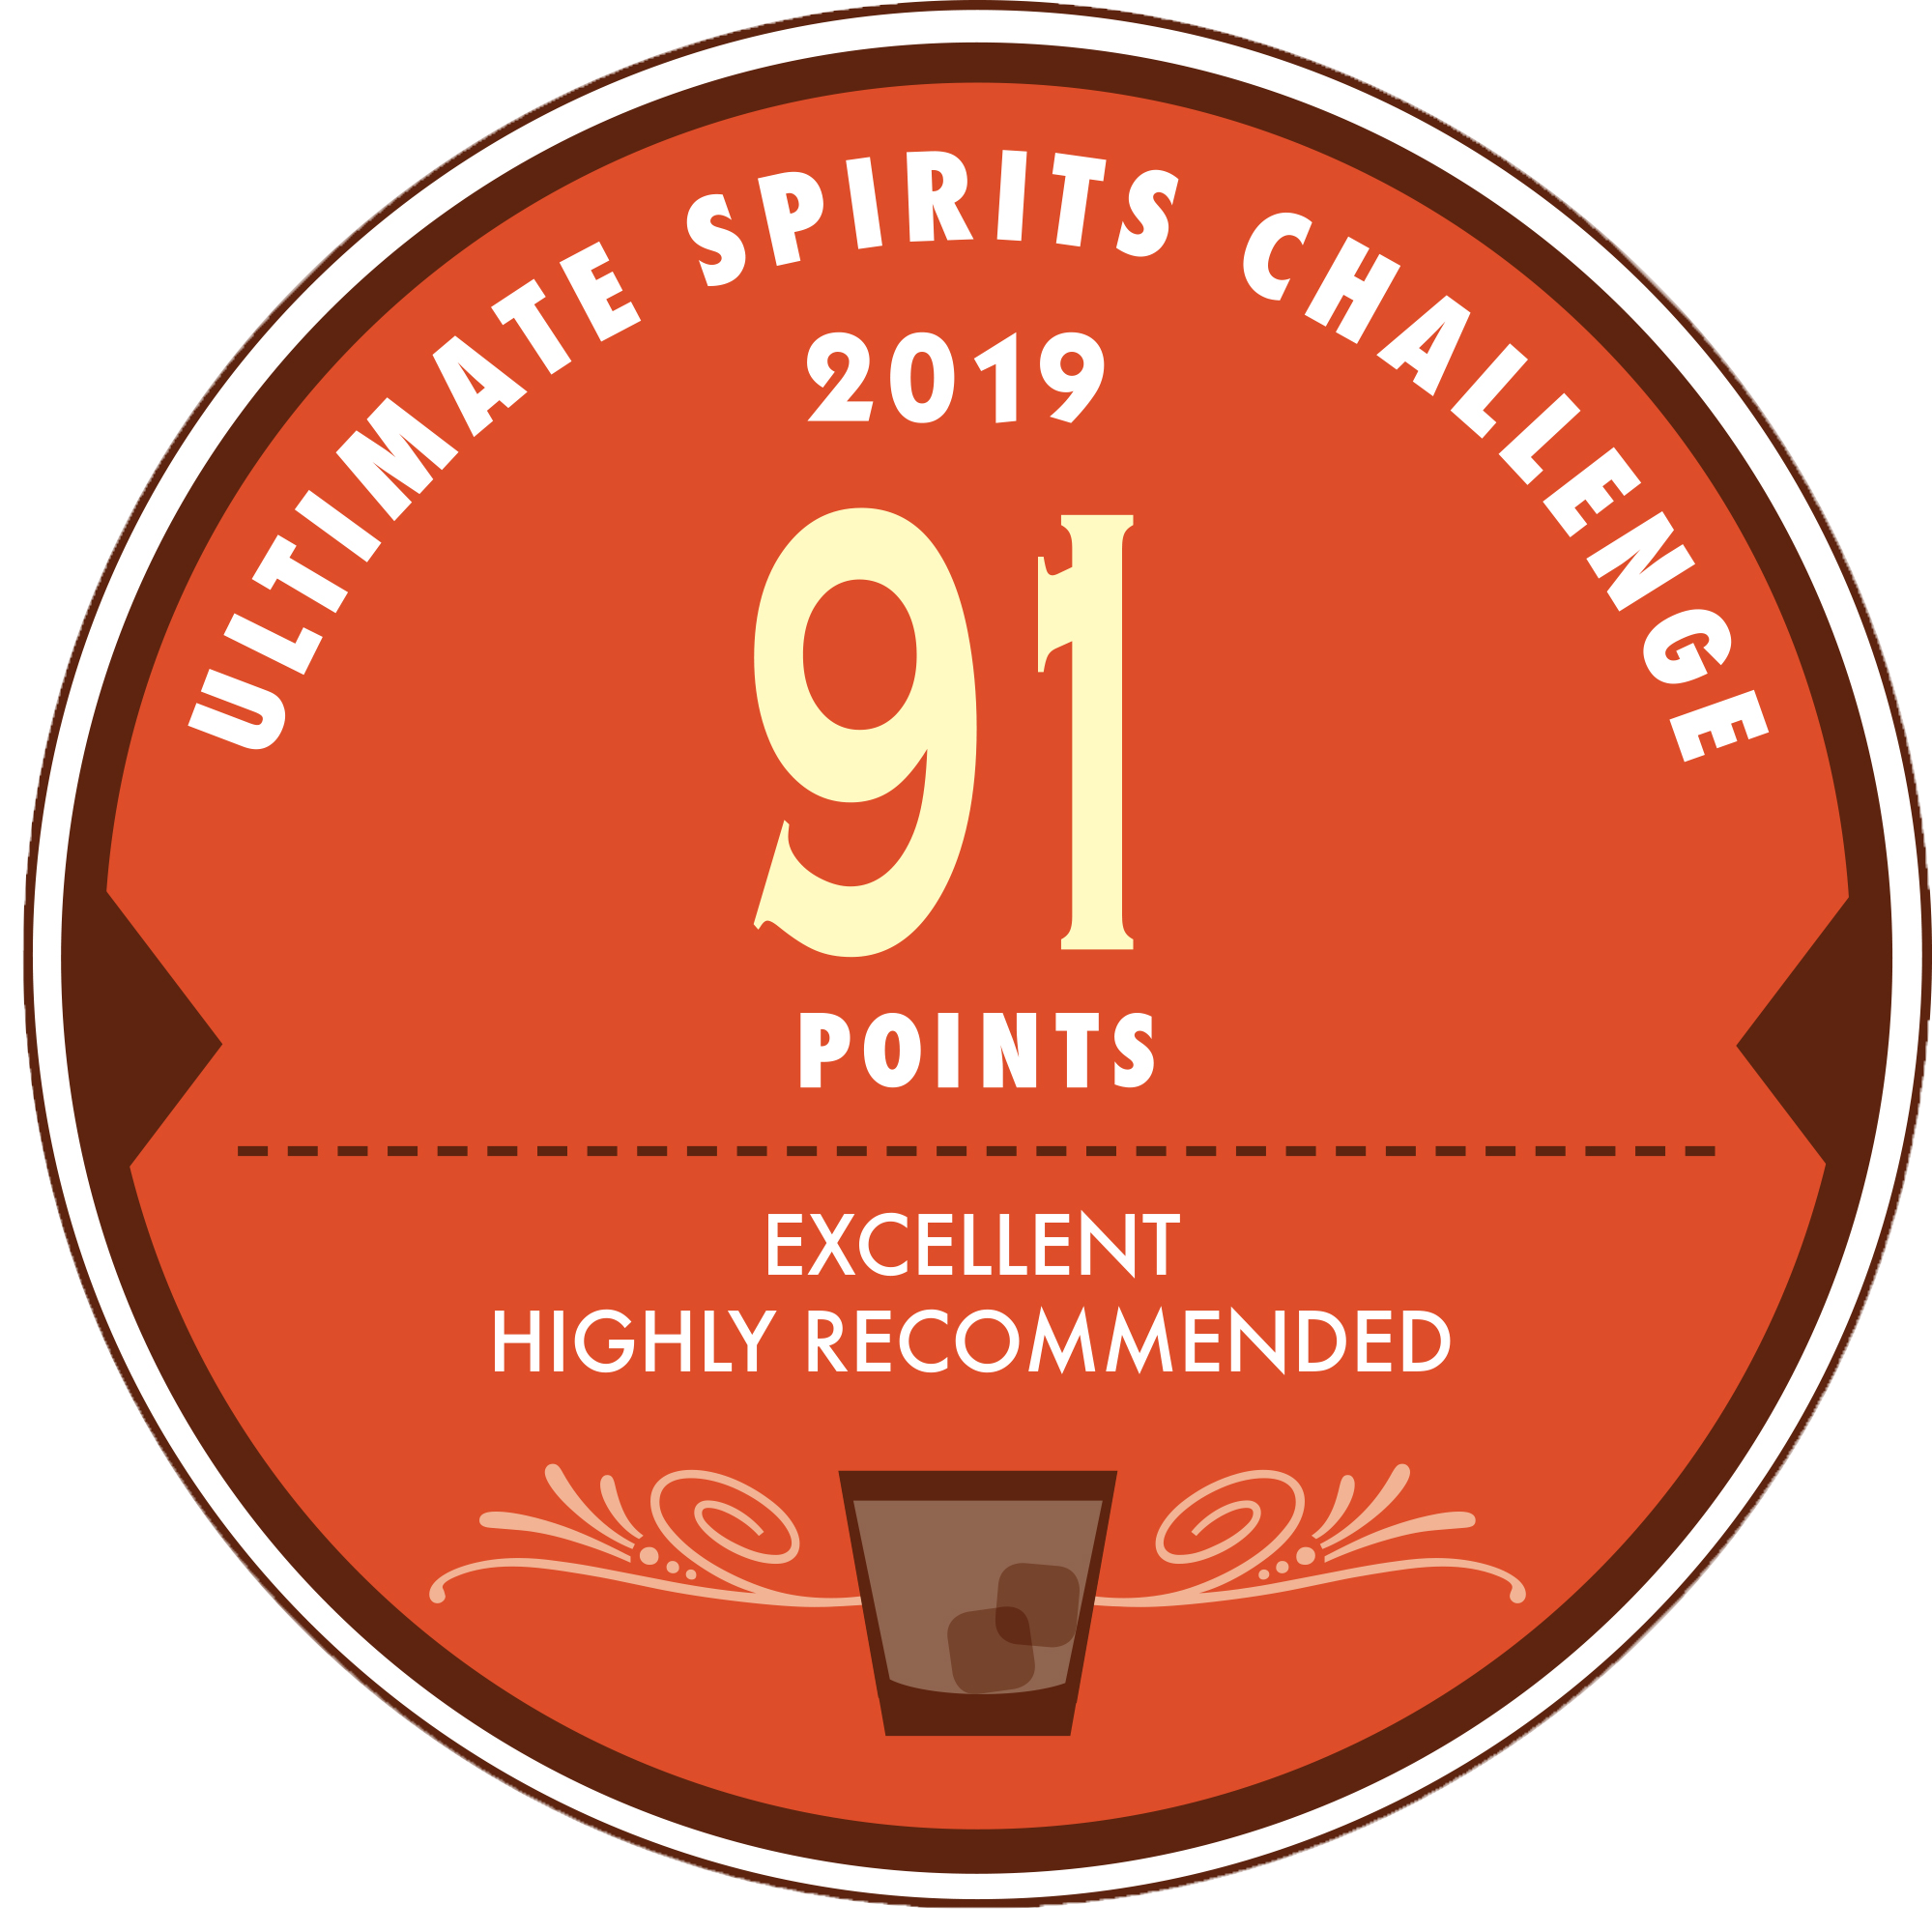 Jamaica 2005 : Ultimate Spirits Challenge 2019, 93 points Excellent Highly Recommended, US